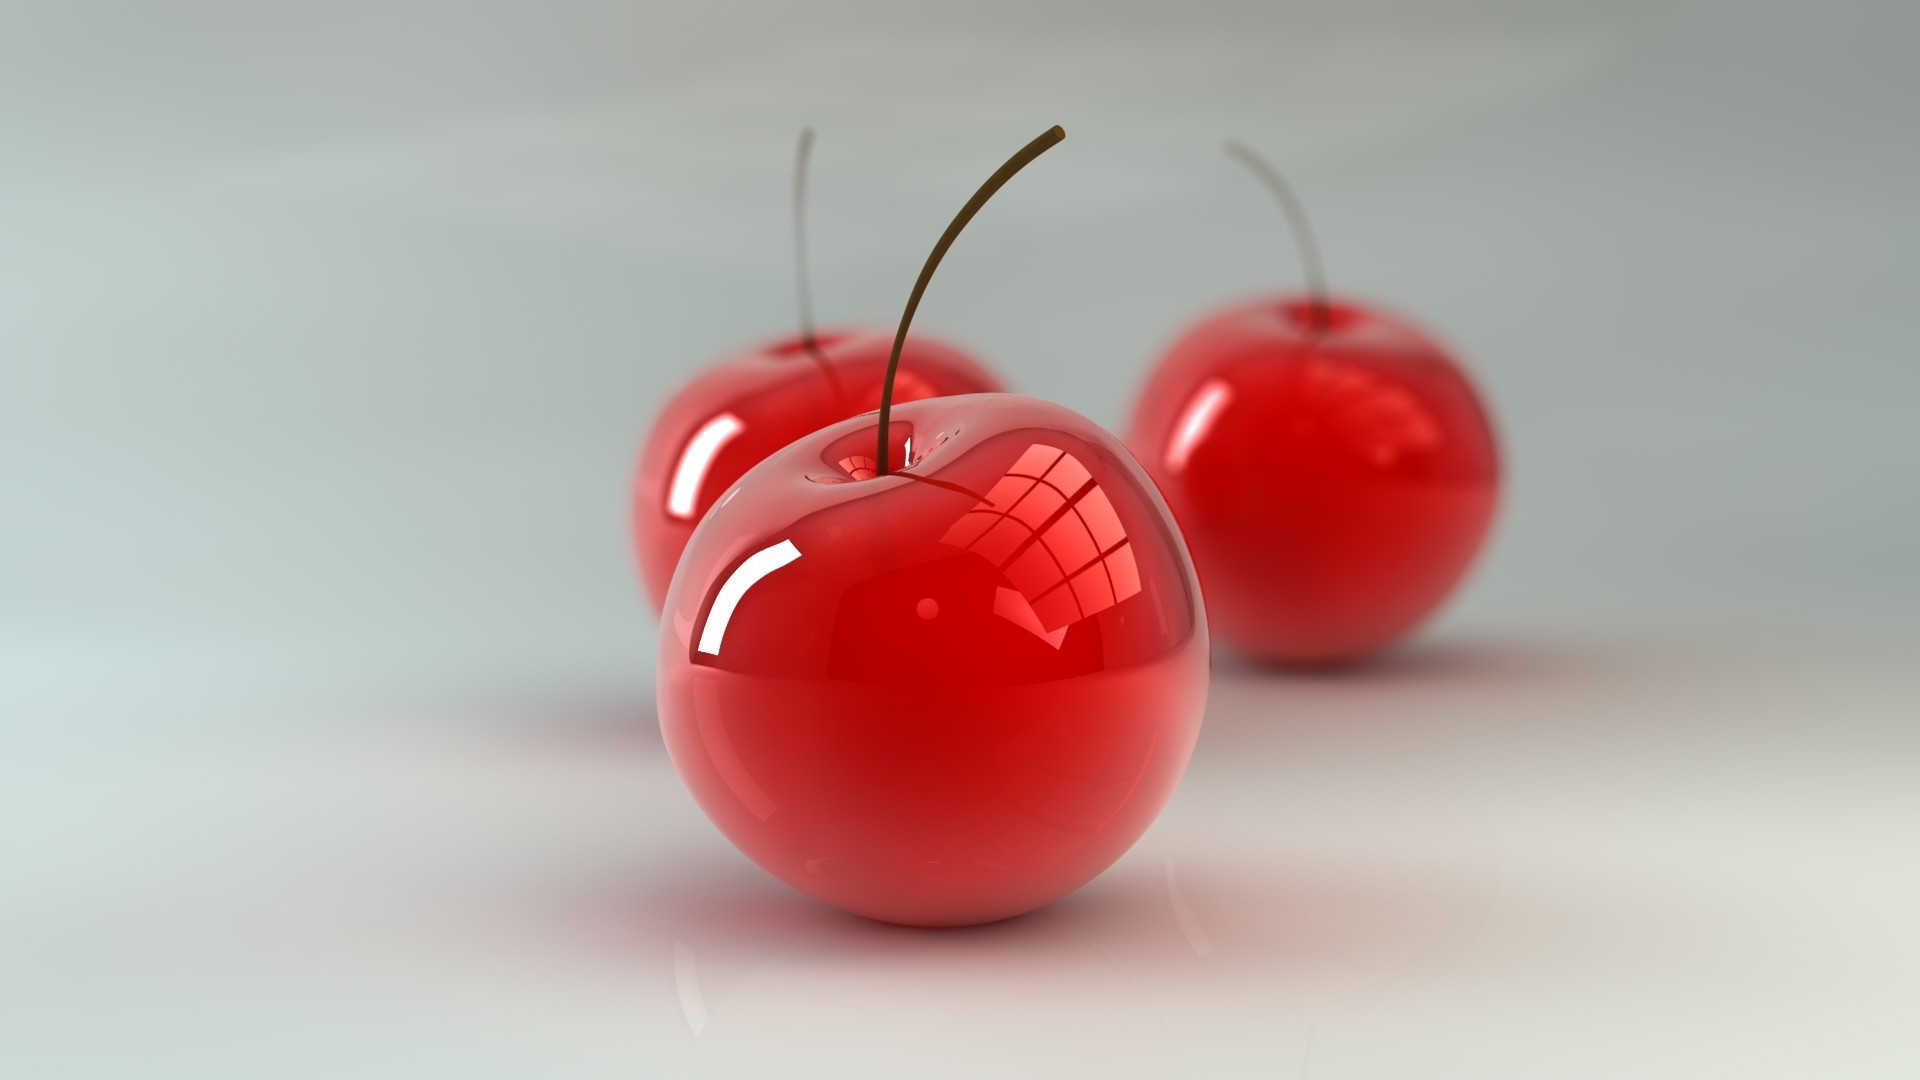 glass cherries glass art HD Wallpaper